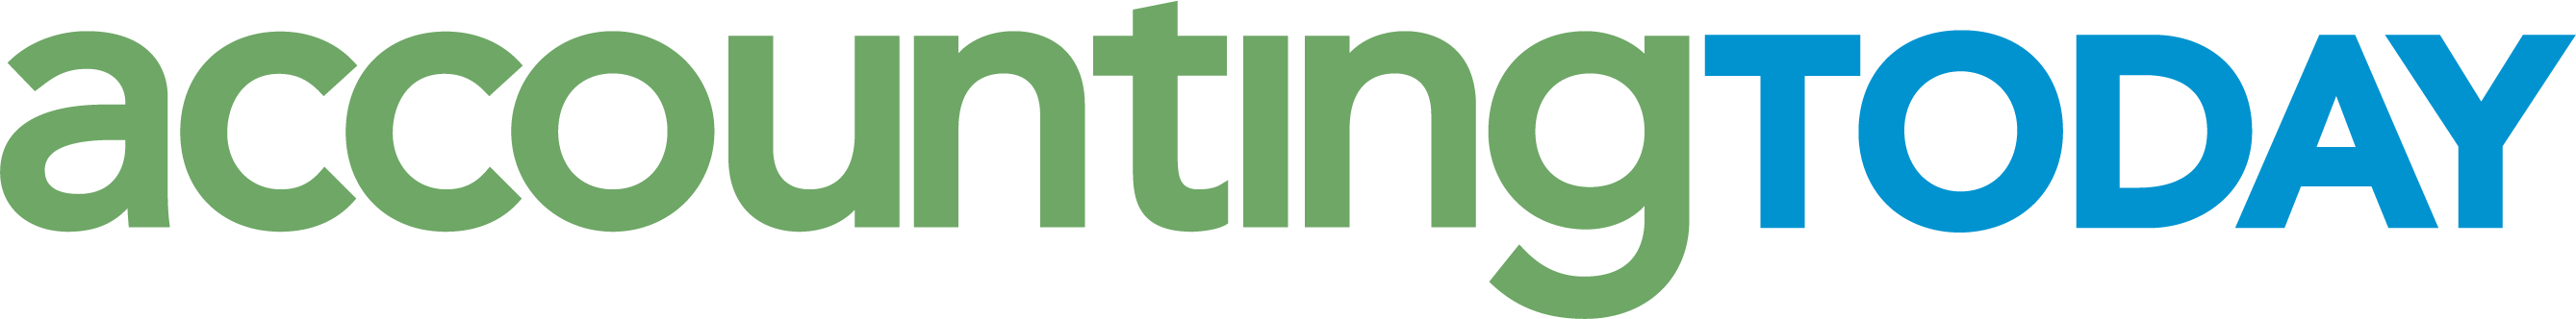 Accounting Today Logo